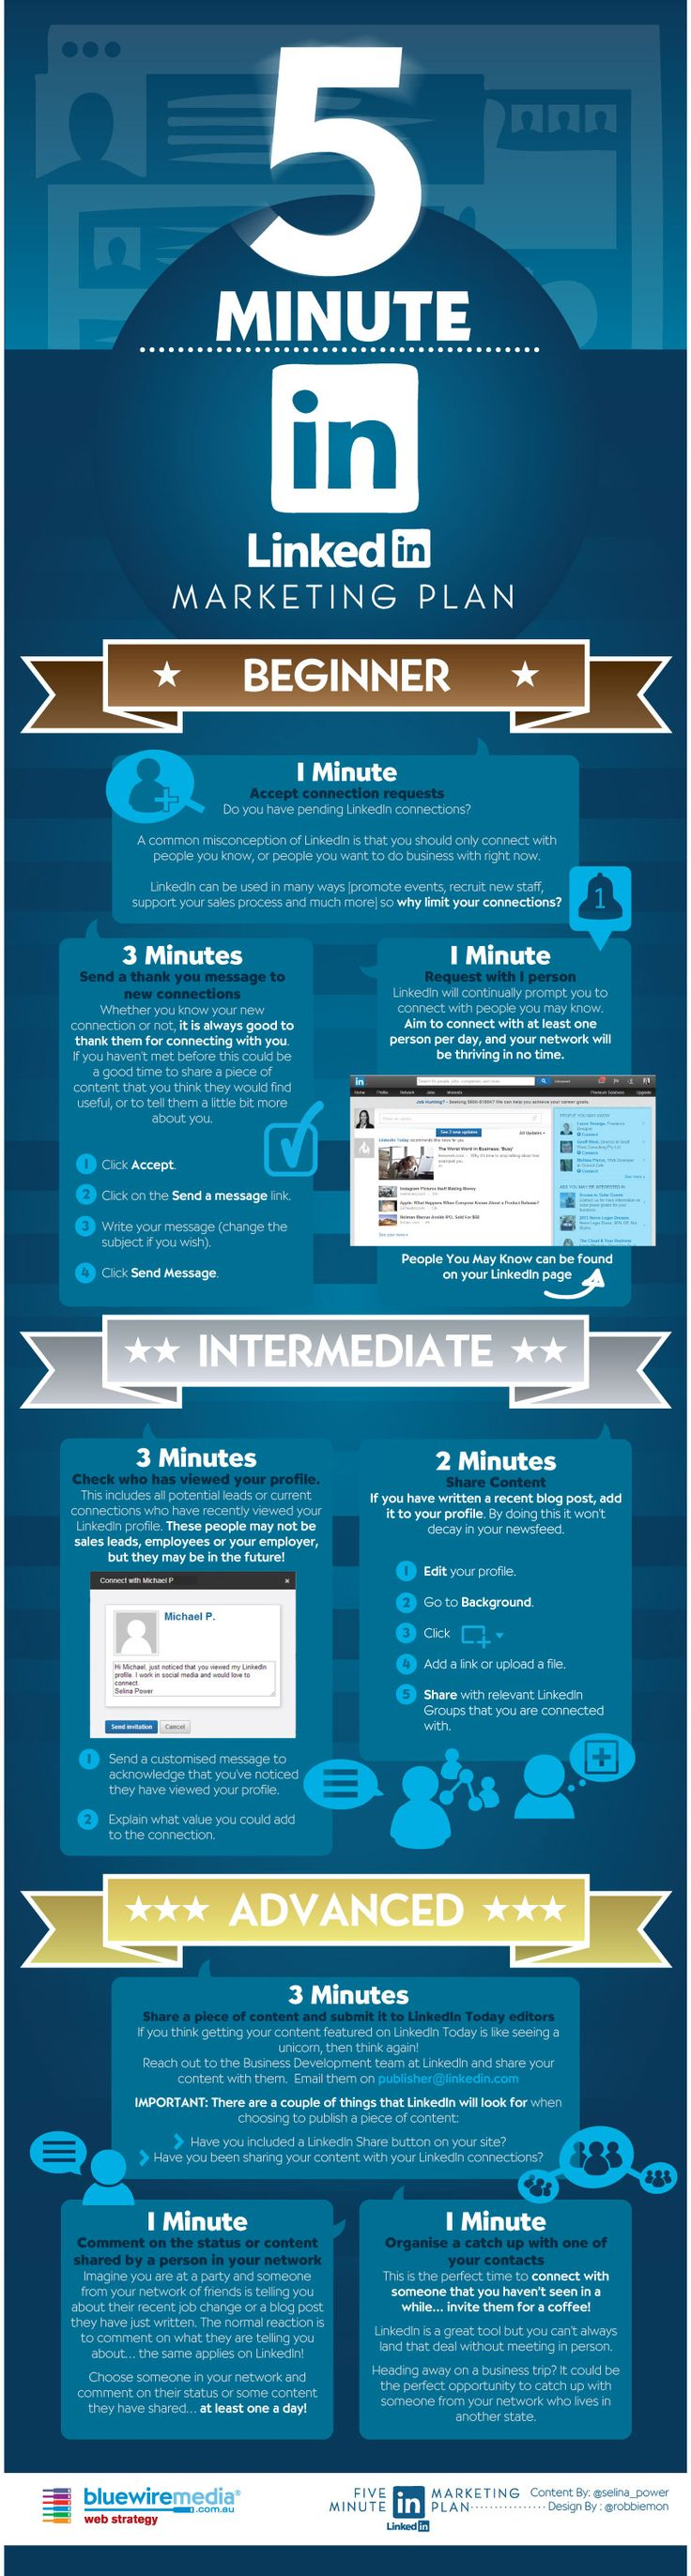 Plan de marketing en LinkedIn express #linkedin #marketingdigital #socialmedia